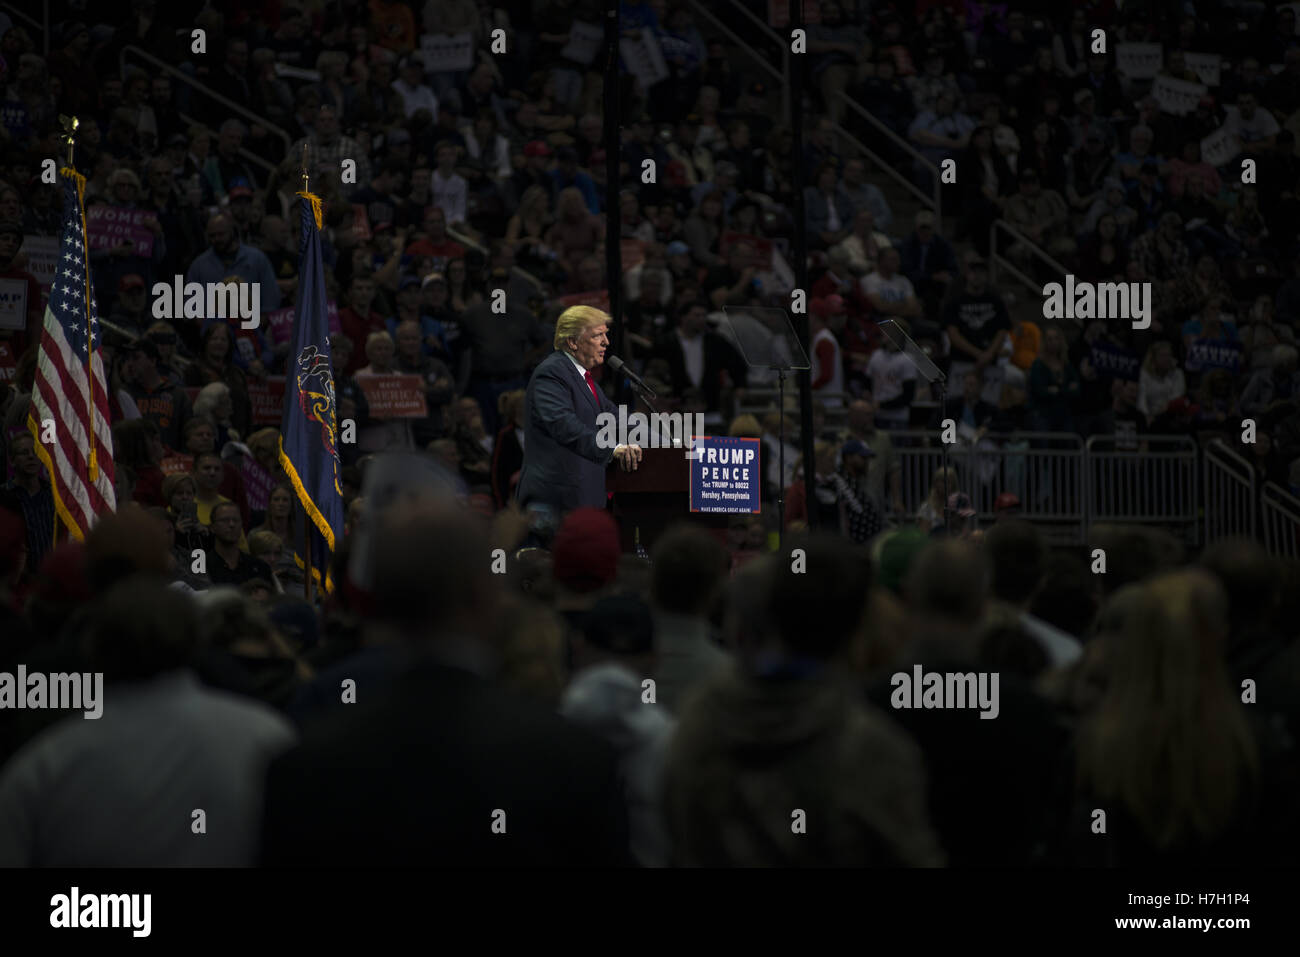 Hershey, Pennsylvania, USA. 5. November 2016. Donald Trump spricht über 10.000 Fans in Hersey, Pennsylvania Stockbild